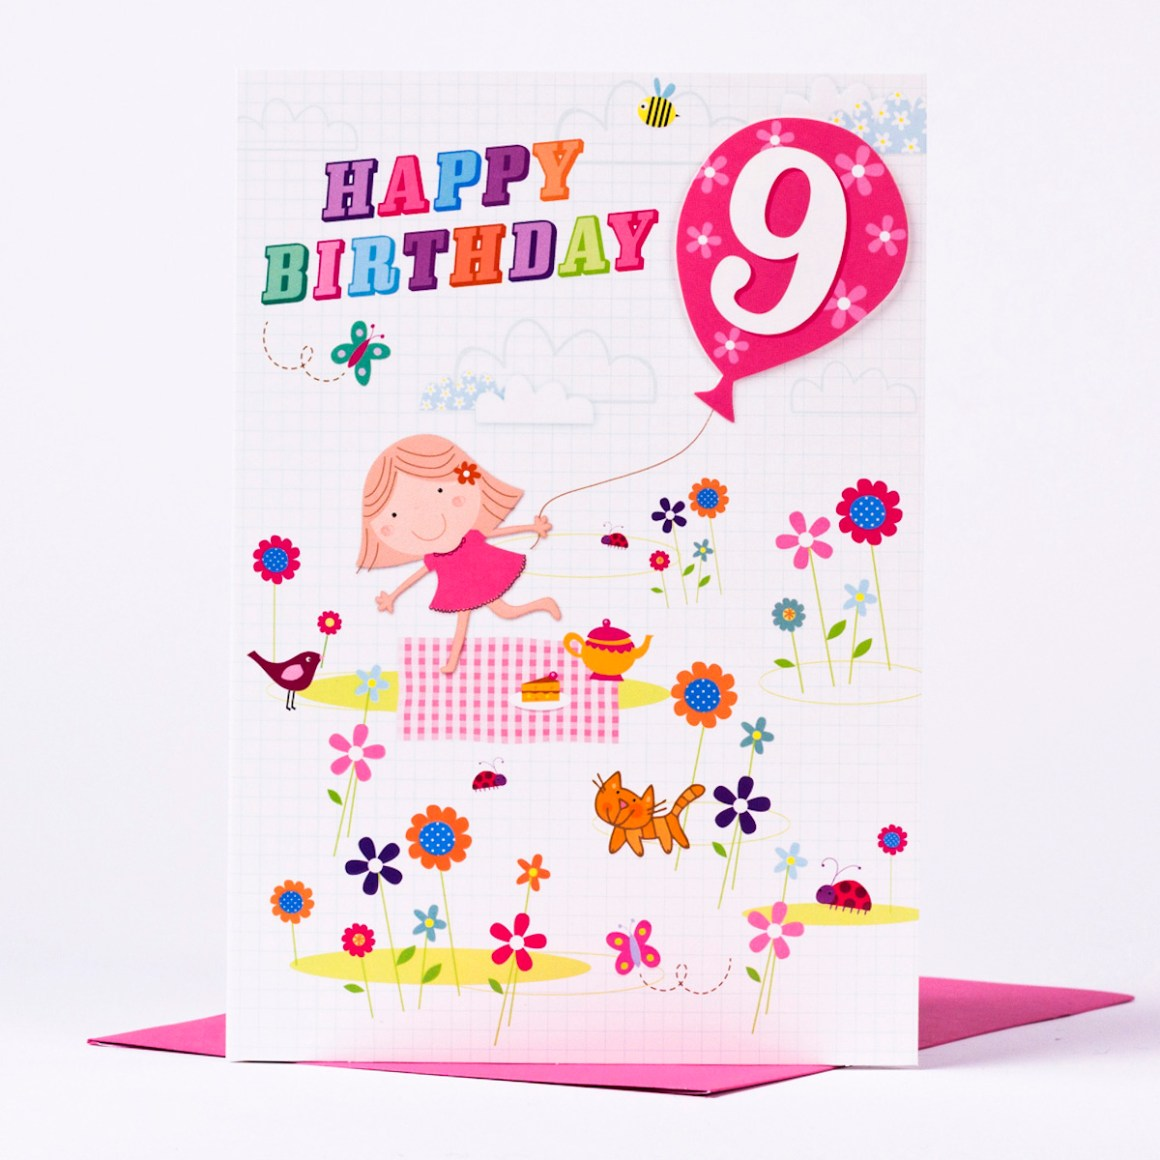 Daughter S 9th Birthday Quotes: Birthday Wishes & Cards For 9 Years Old